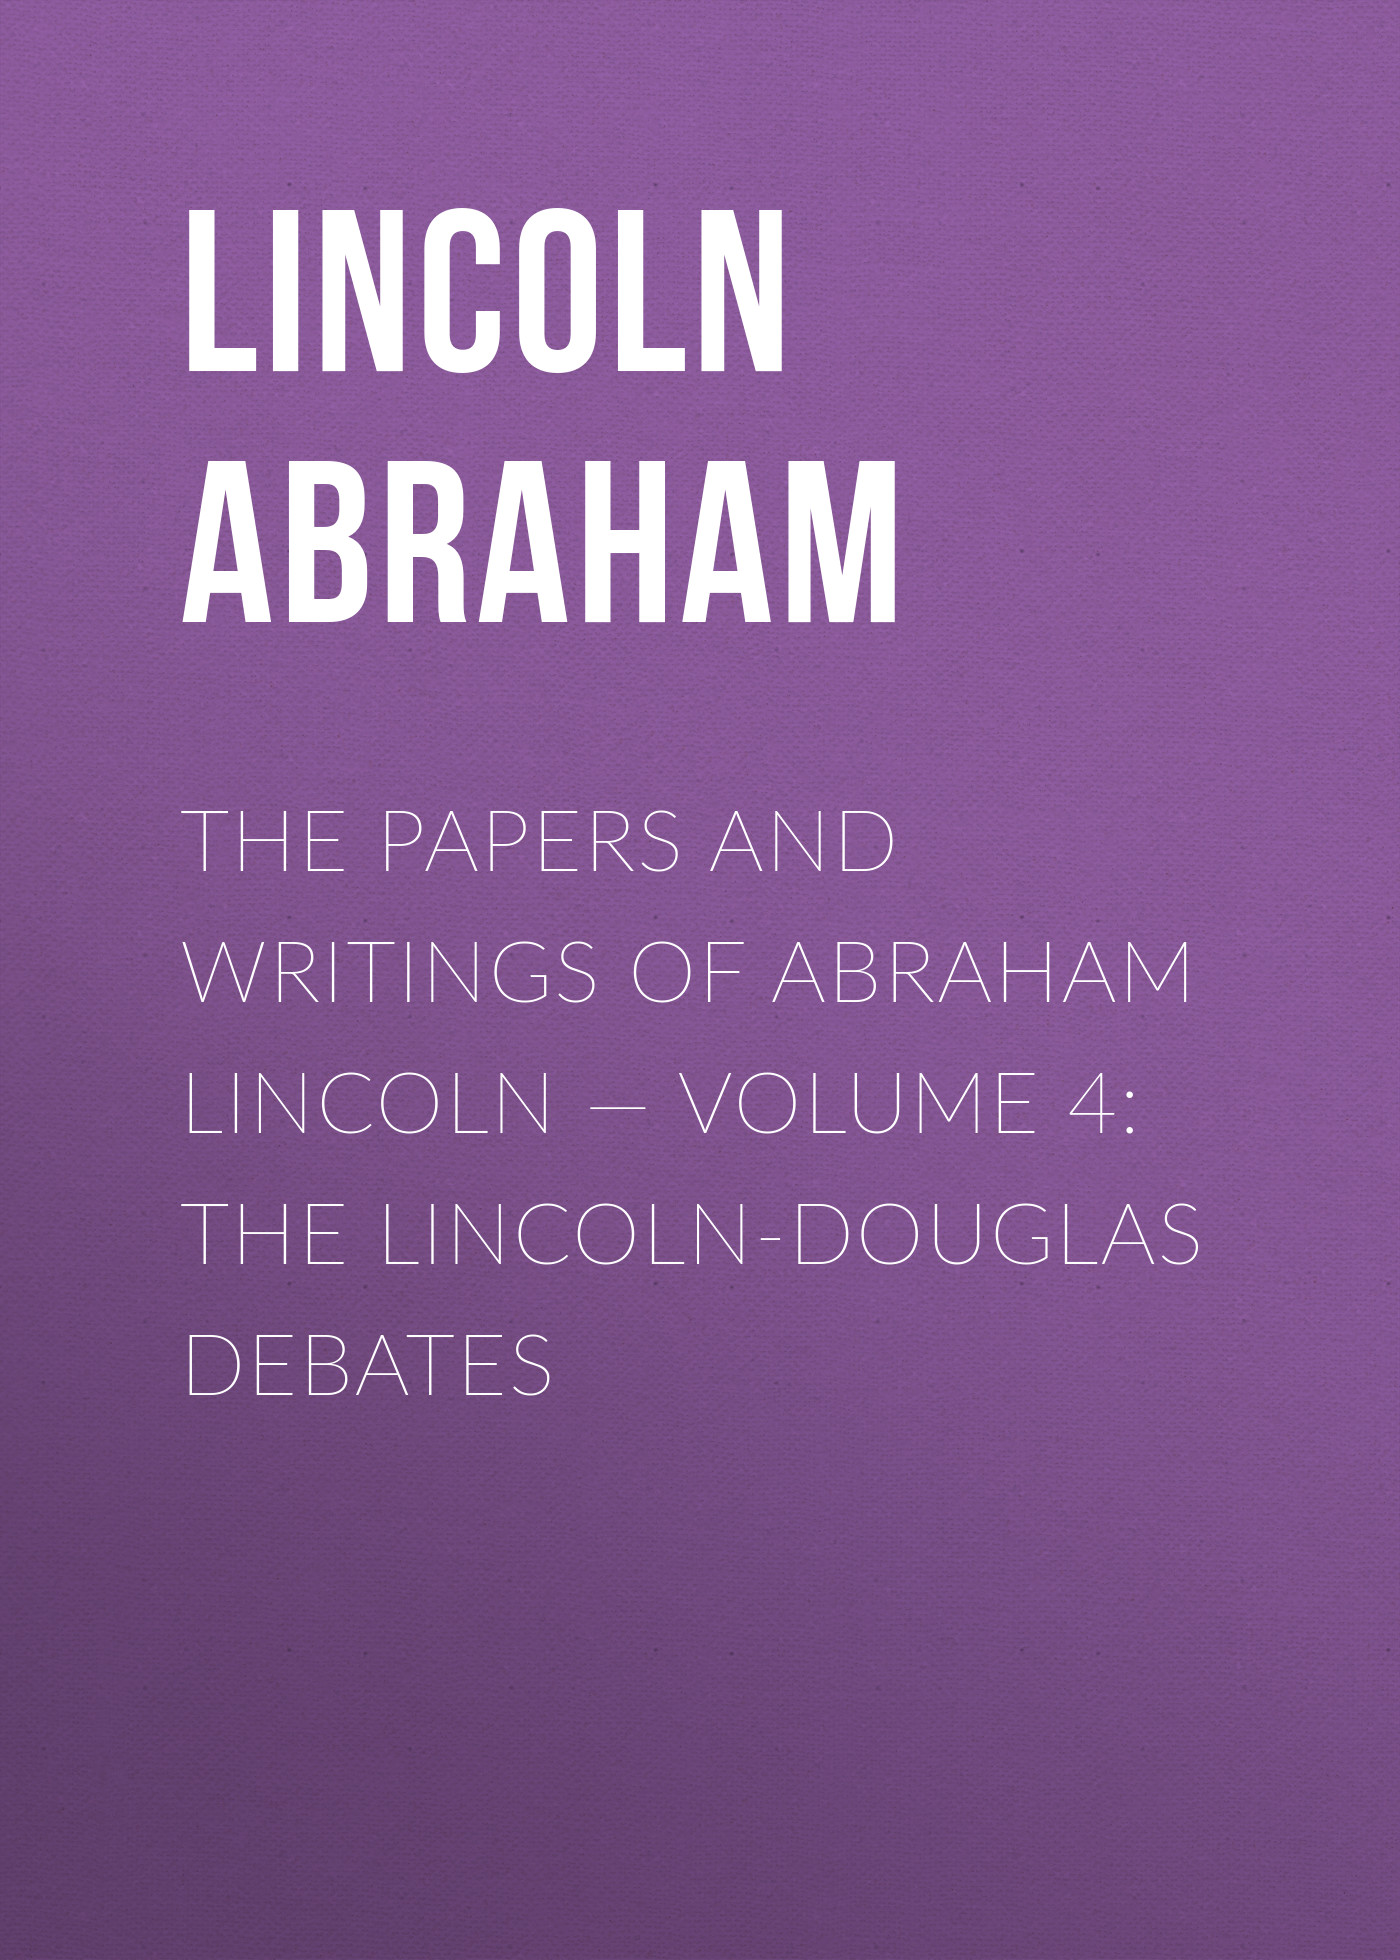 Lincoln Abraham The Papers And Writings Of Abraham Lincoln — Volume 4: The Lincoln-Douglas Debates grahame smith s abraham lincoln vampire hunter